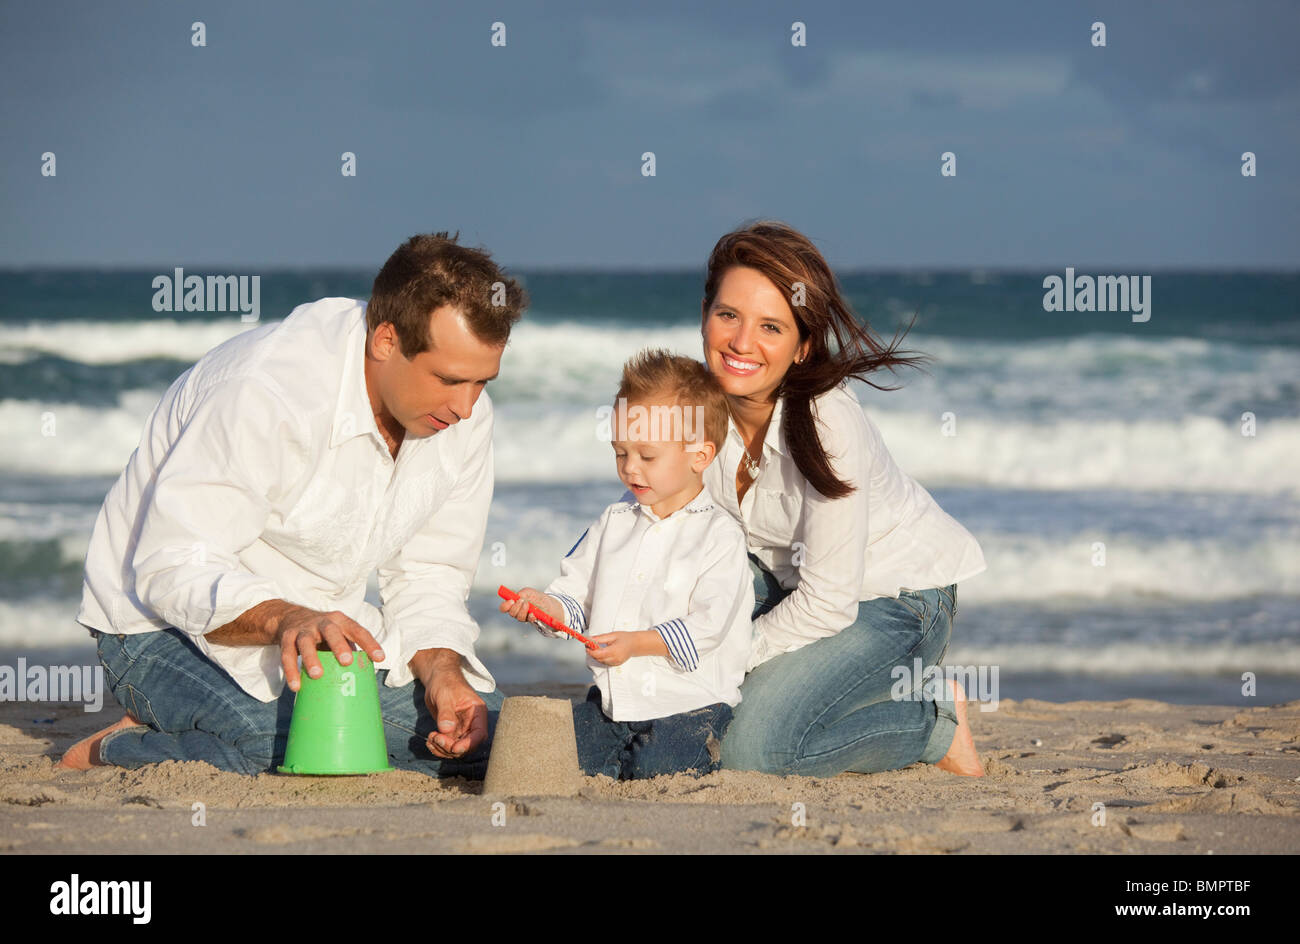 Fort Lauderdale, Florida, United States Of America; A Family Playing In The Sand On The Beach - Stock Image